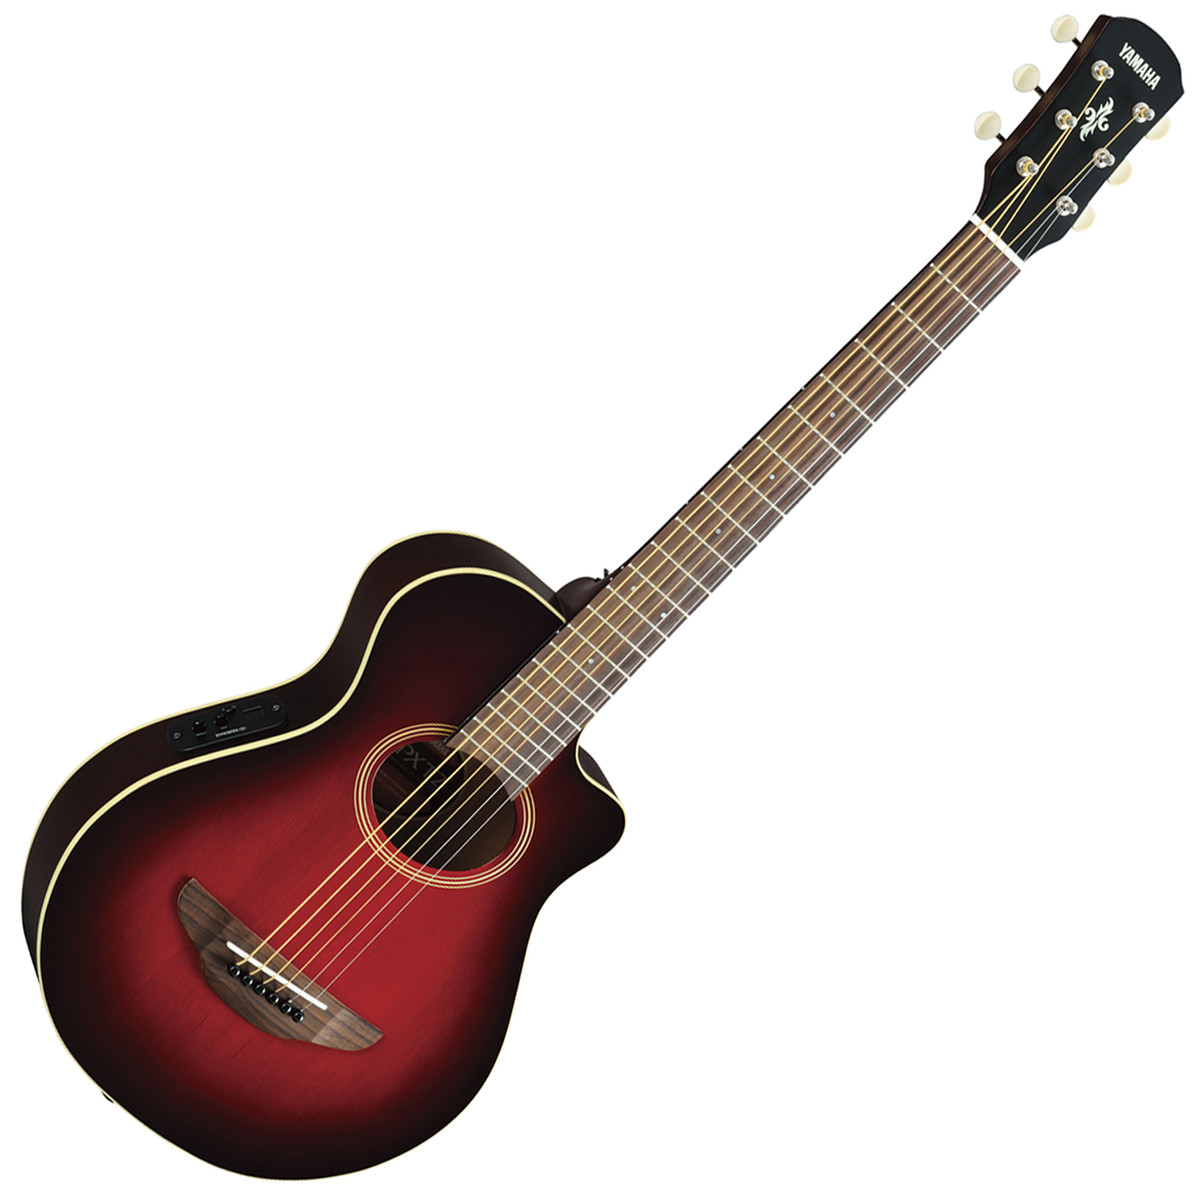 Yamaha apxt2 3 4 electro acoustic guitar dark red burst for 3 4 yamaha acoustic guitar